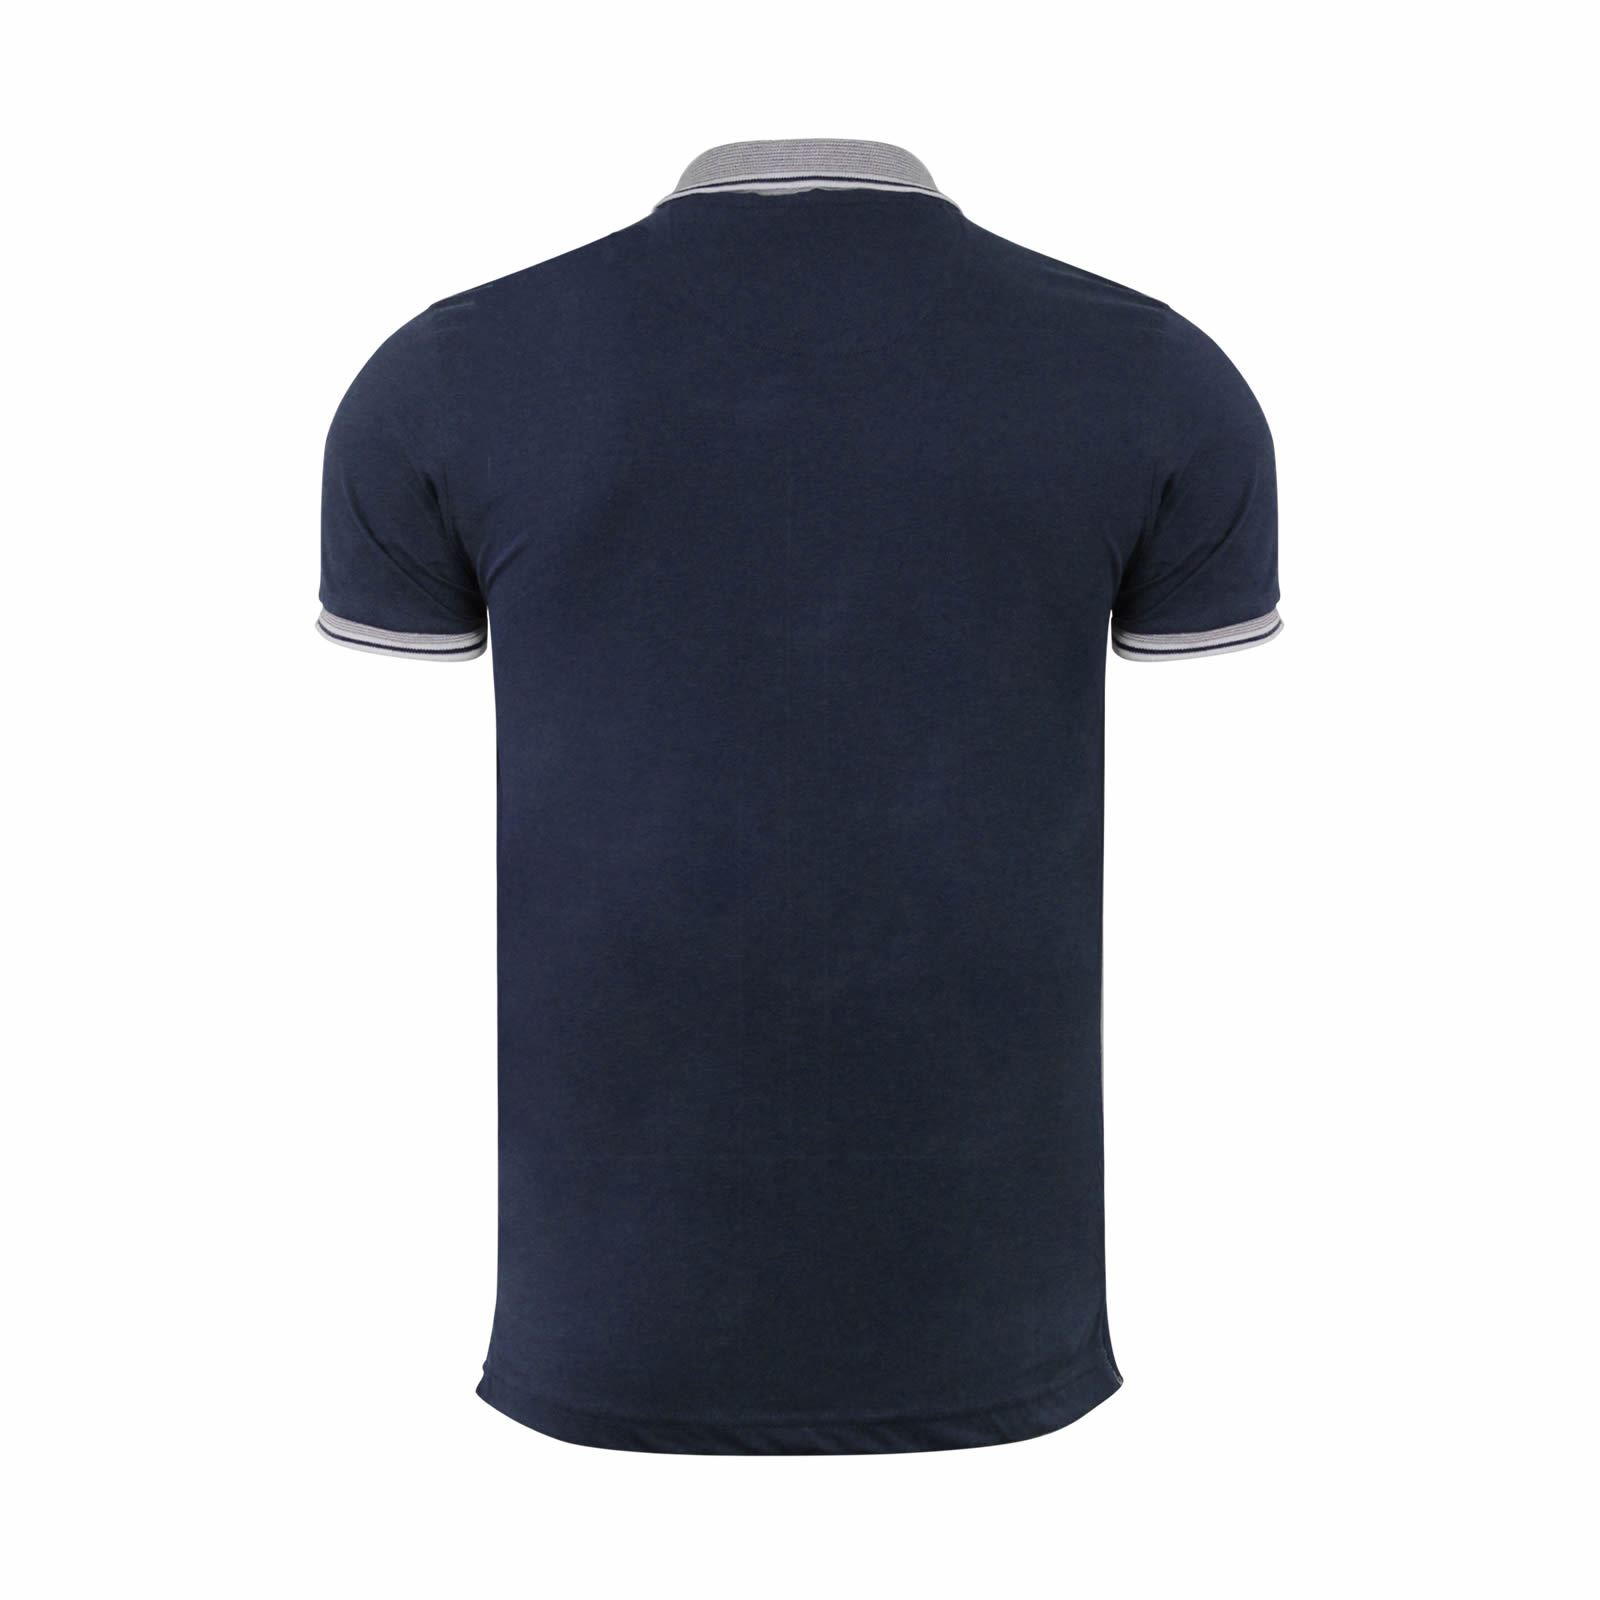 Mens-Polo-T-Shirt-Brave-Soul-Lorenzo-Grindle-Short-Sleeve-Collared-Casual-Top thumbnail 5